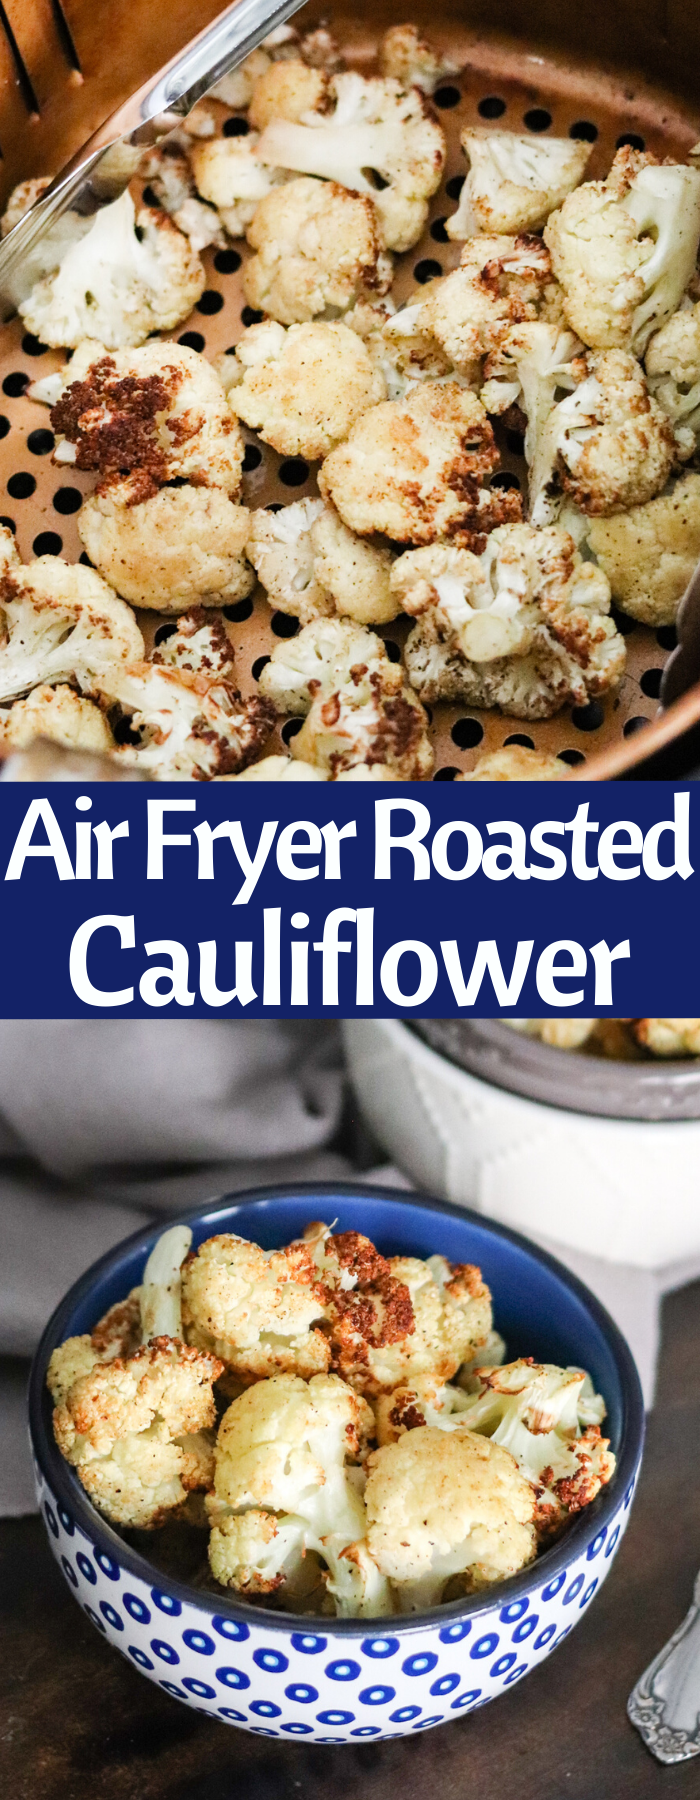 Air Fryer Roasted Cauliflower is healthy, easy, and has less than a handful of ingredients! Done in a few minutes and super delicious! KETO, PALEO, WHOLE30, VEGAN/VEGETARIAN and heart healthy! Only 81 calories per serving!!!